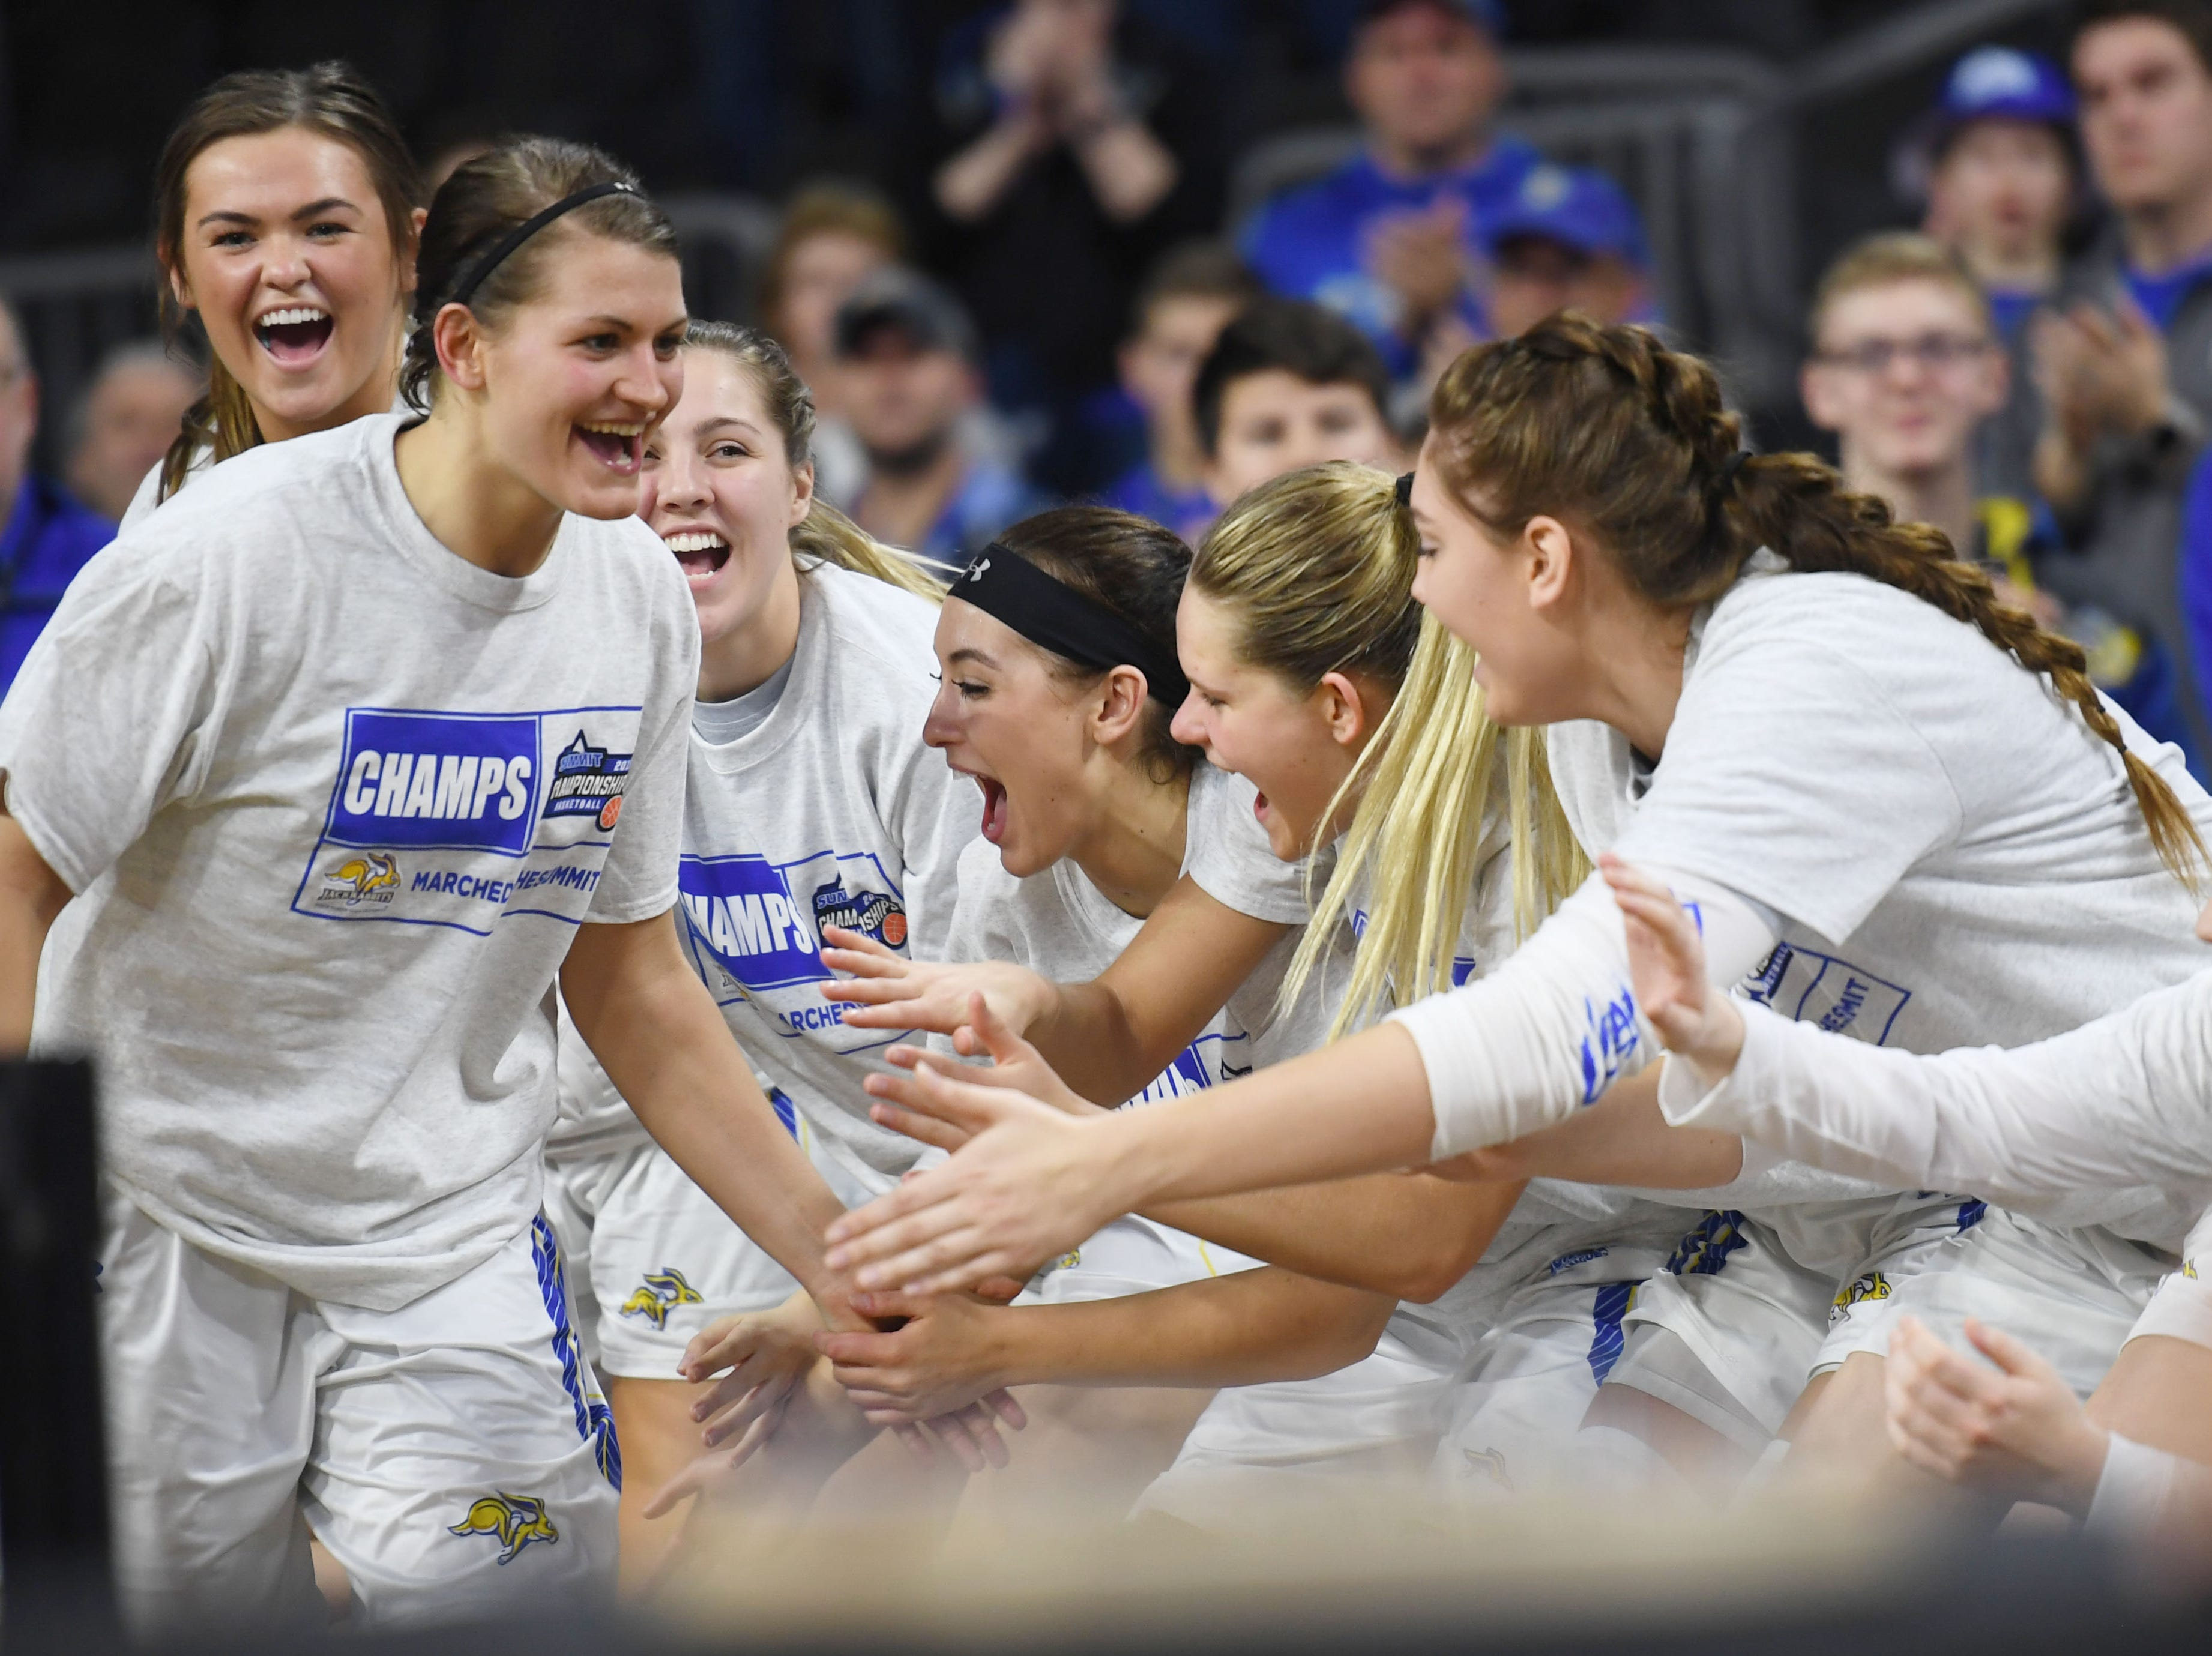 SDSU's Macy Miller is recognized after the game against USD Tuesday, March 12, in the Summit League women's championship at the Denny Sanford Premier Center in Sioux Falls.